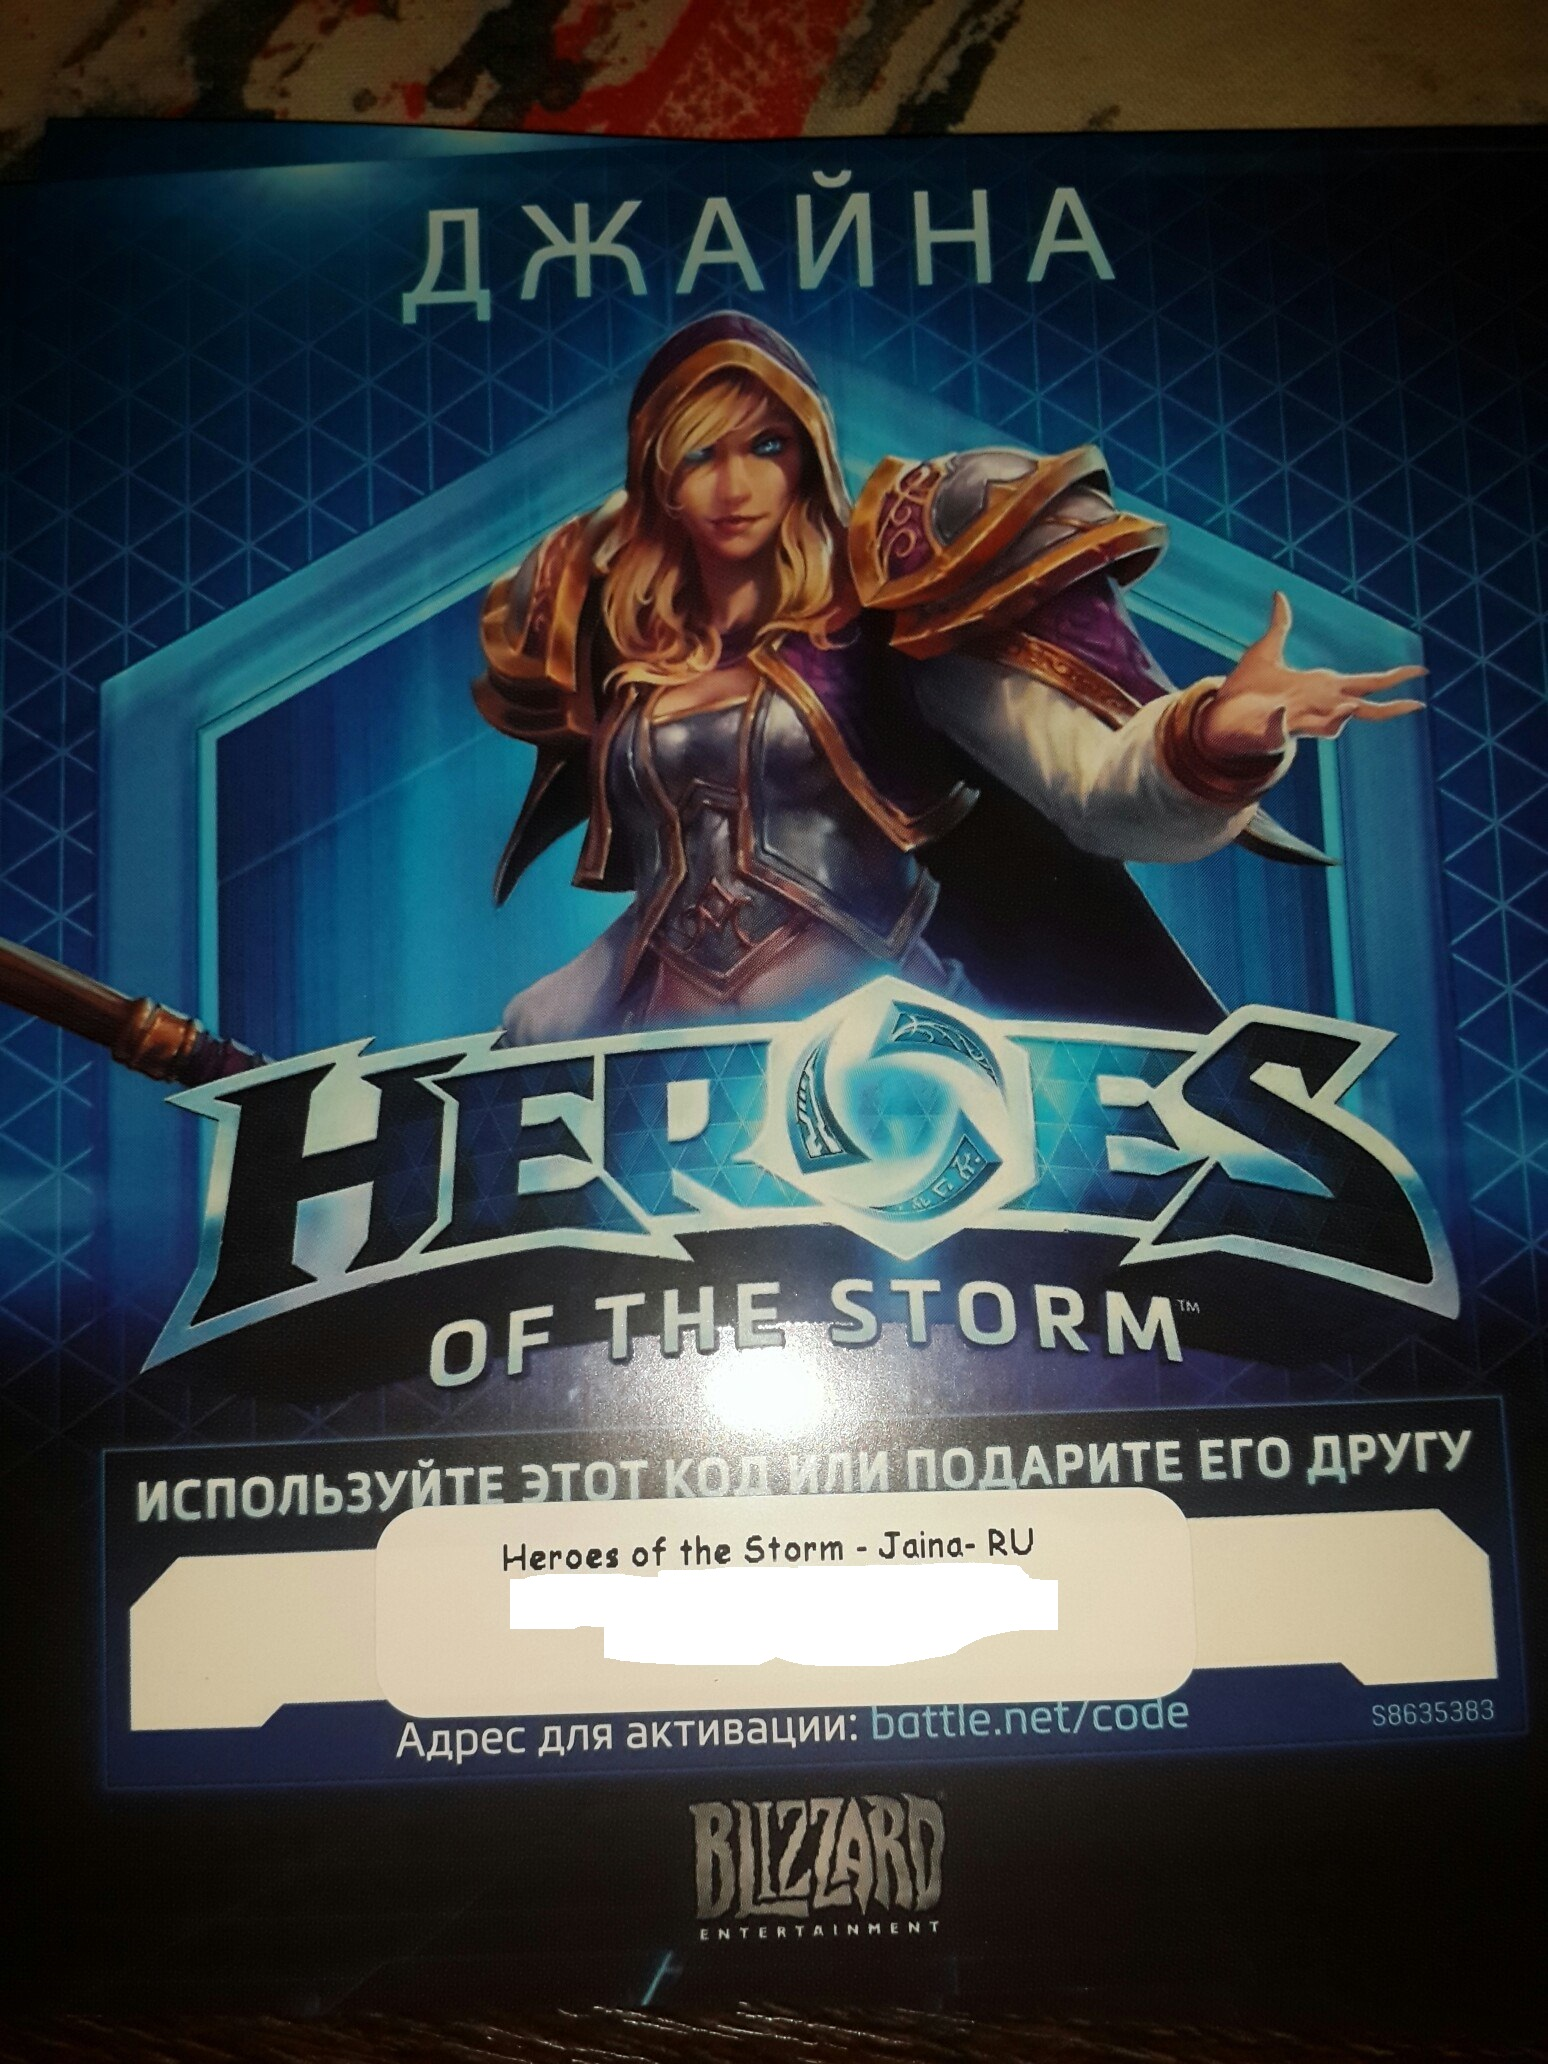 Heroes of the Storm - the hero of Jaina Proudmoore (Bat